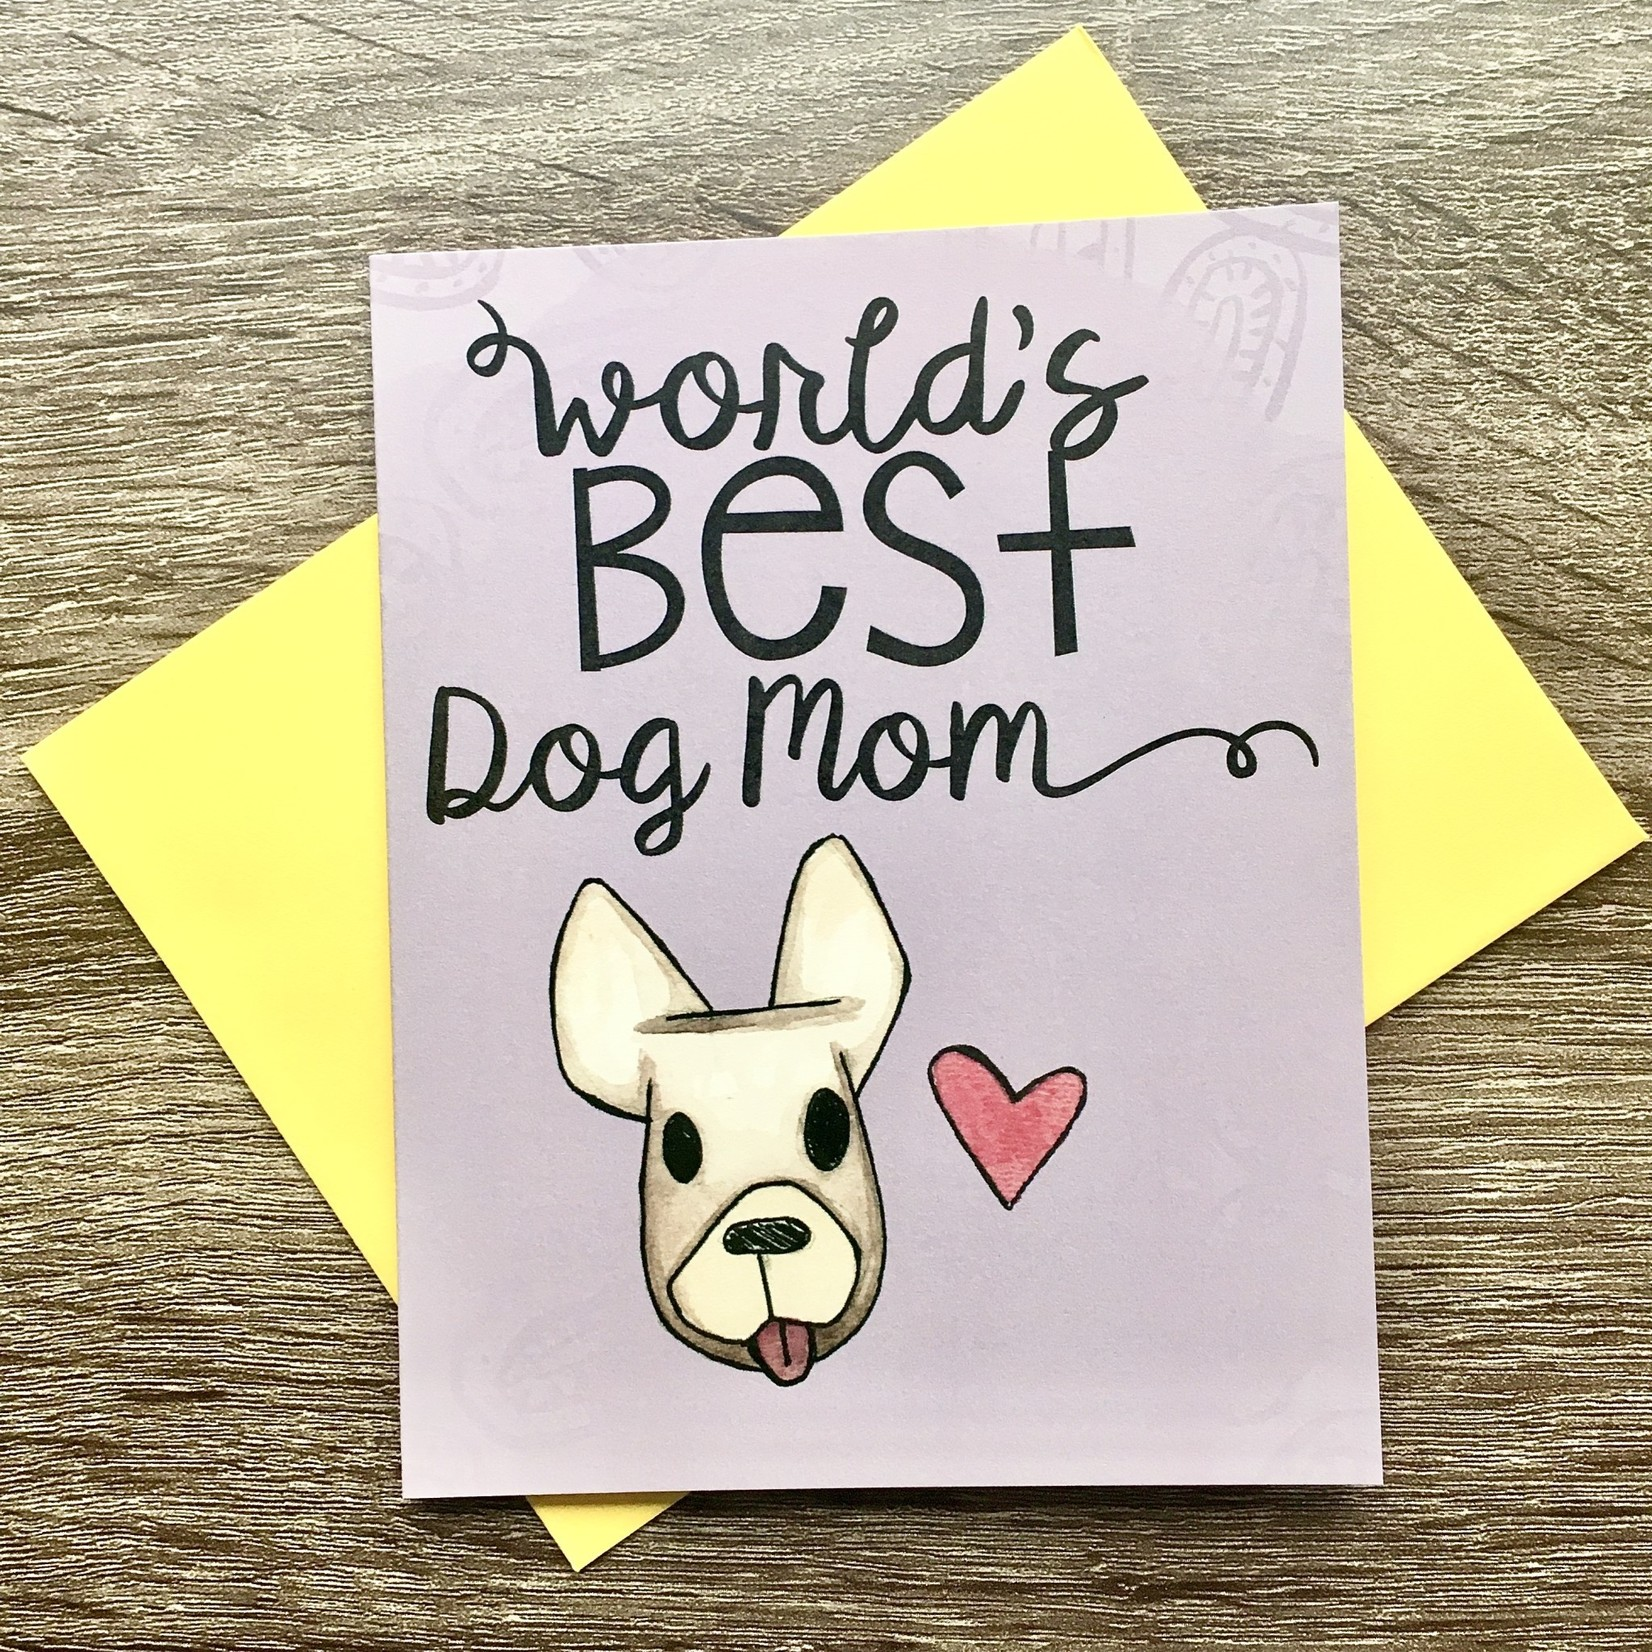 Cat People Press World's Best Dog Mom Greeting Card